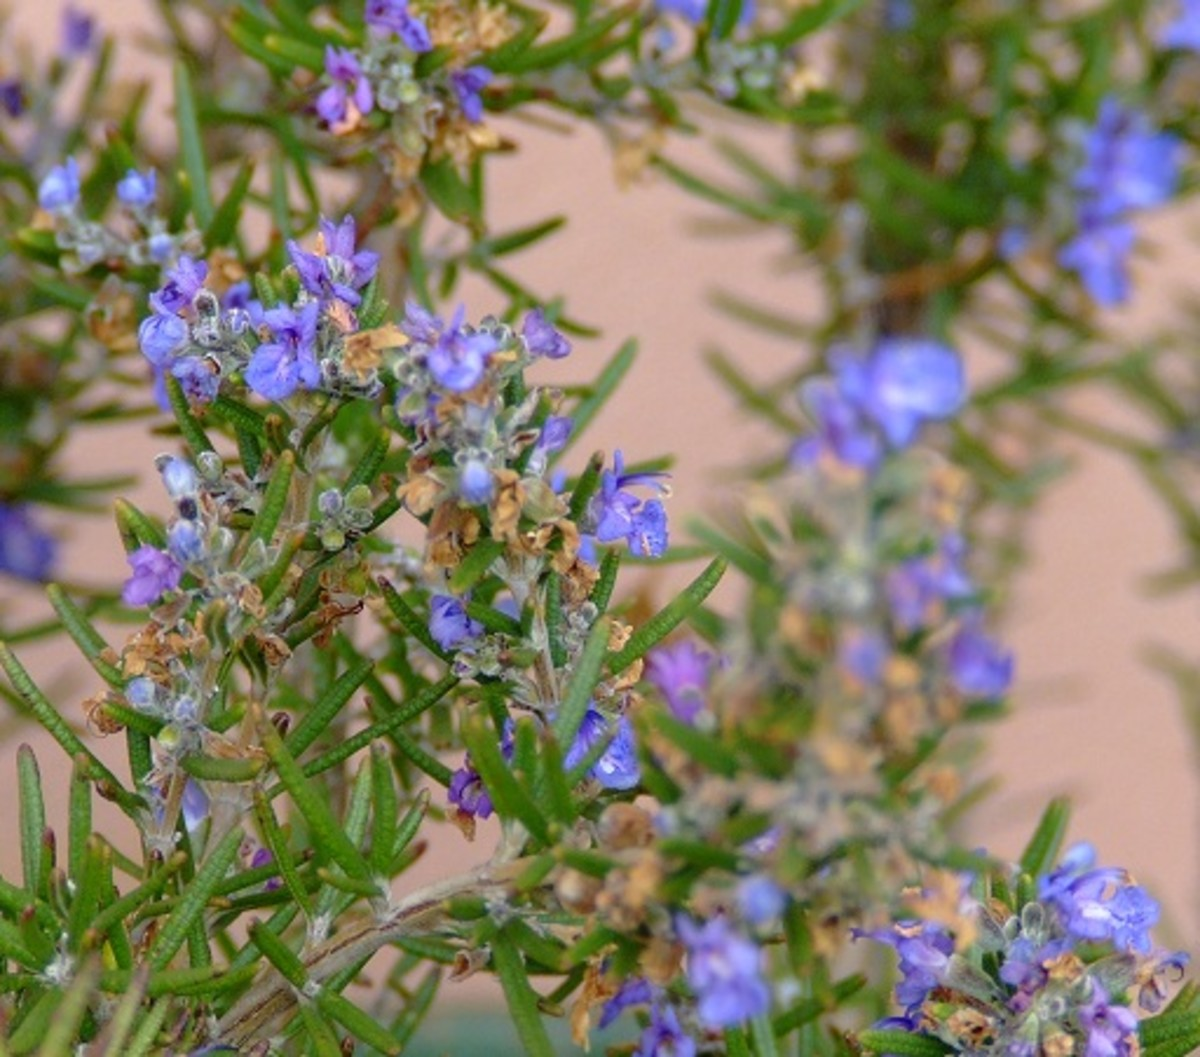 Rosemary has the ability to boost your mood and energy levels - it's a great tonic for students studying for exams